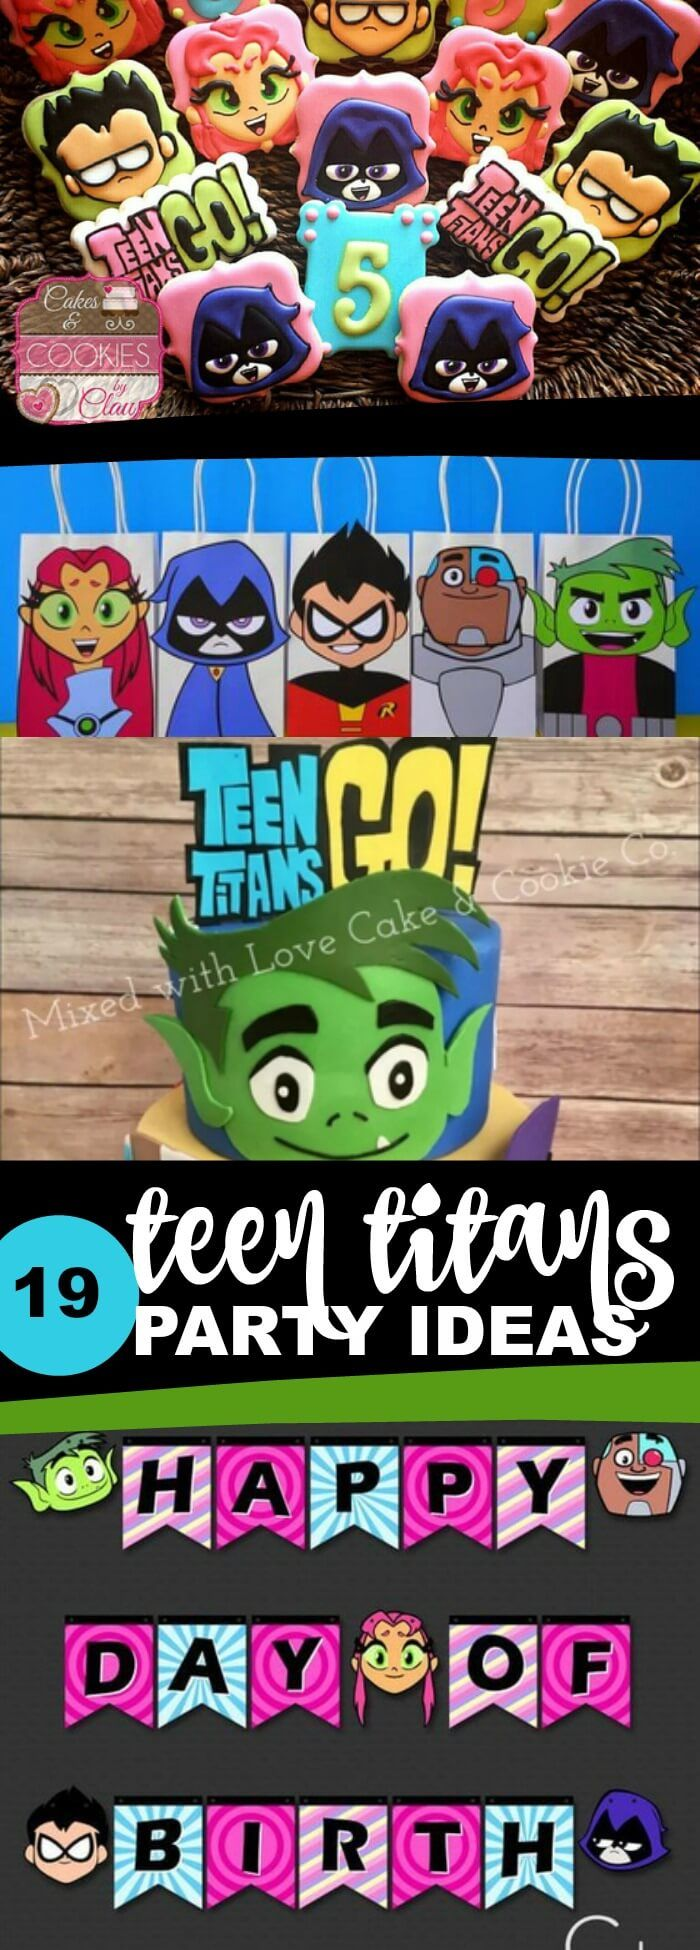 Teen Titans Go Birthday Party Ideas, Food, Games -2514